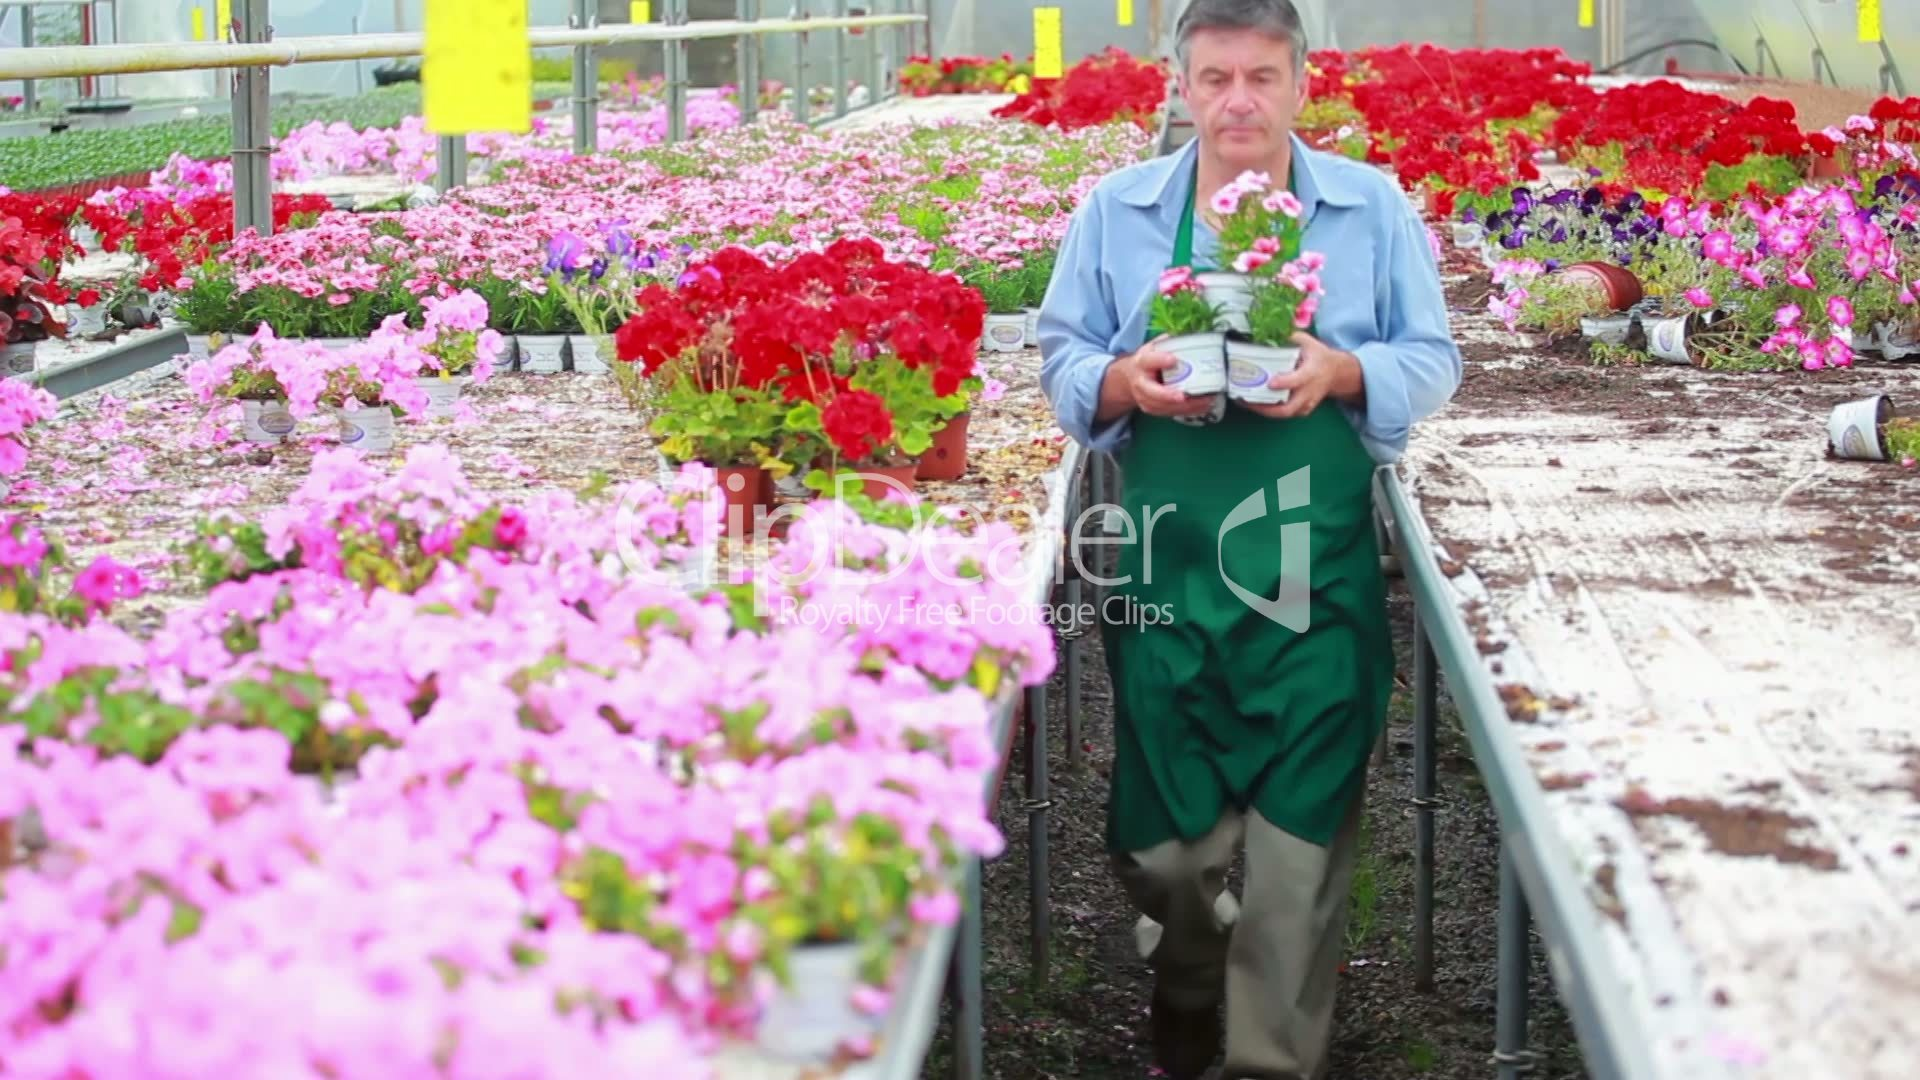 Greenhouse gardening 099 - Gardener Carrying Plants Royalty Free Video And Stock Footage